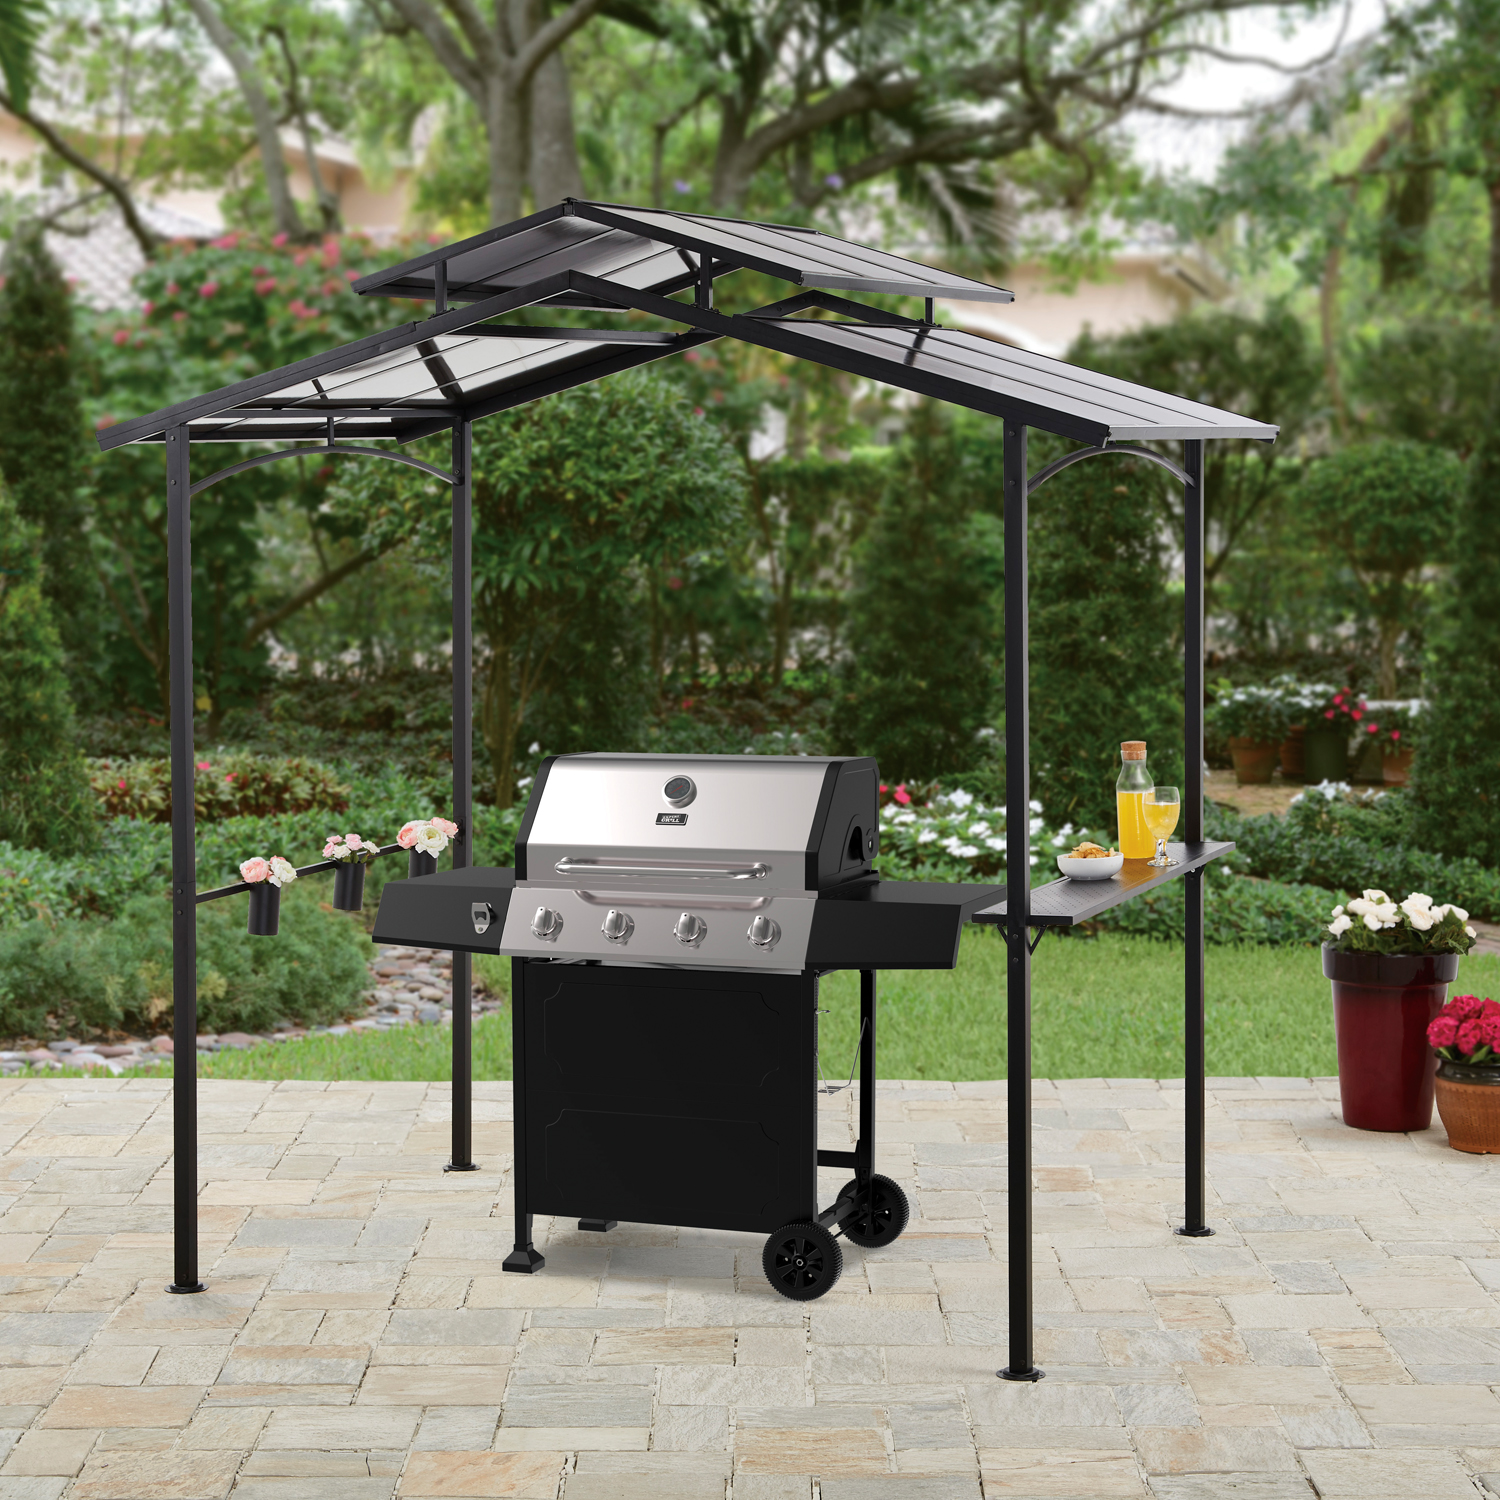 Outdoor Grill Better Homes Gardens Winmark Outdoor 8l X 5w X 8h Ft Hardtop Grill Gazebo Walmart